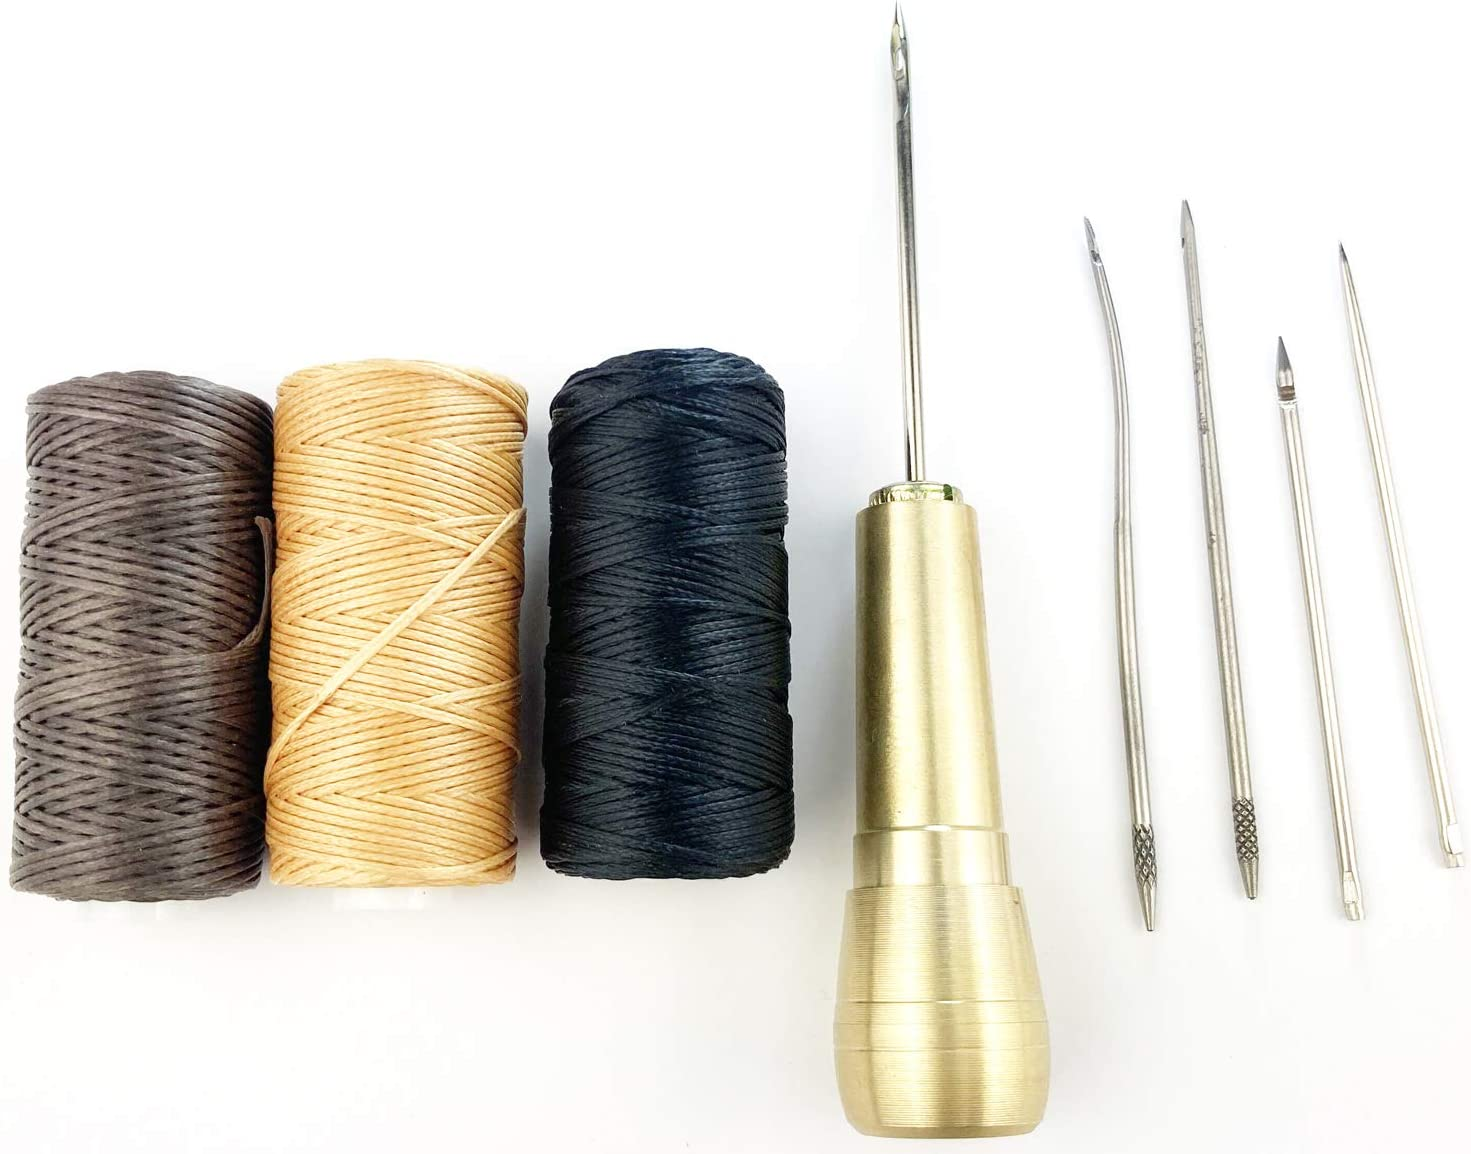 Limited price sale Selling Becho 5 Needles Hand Stitcher Sets Sewing Handle Awl Copper with